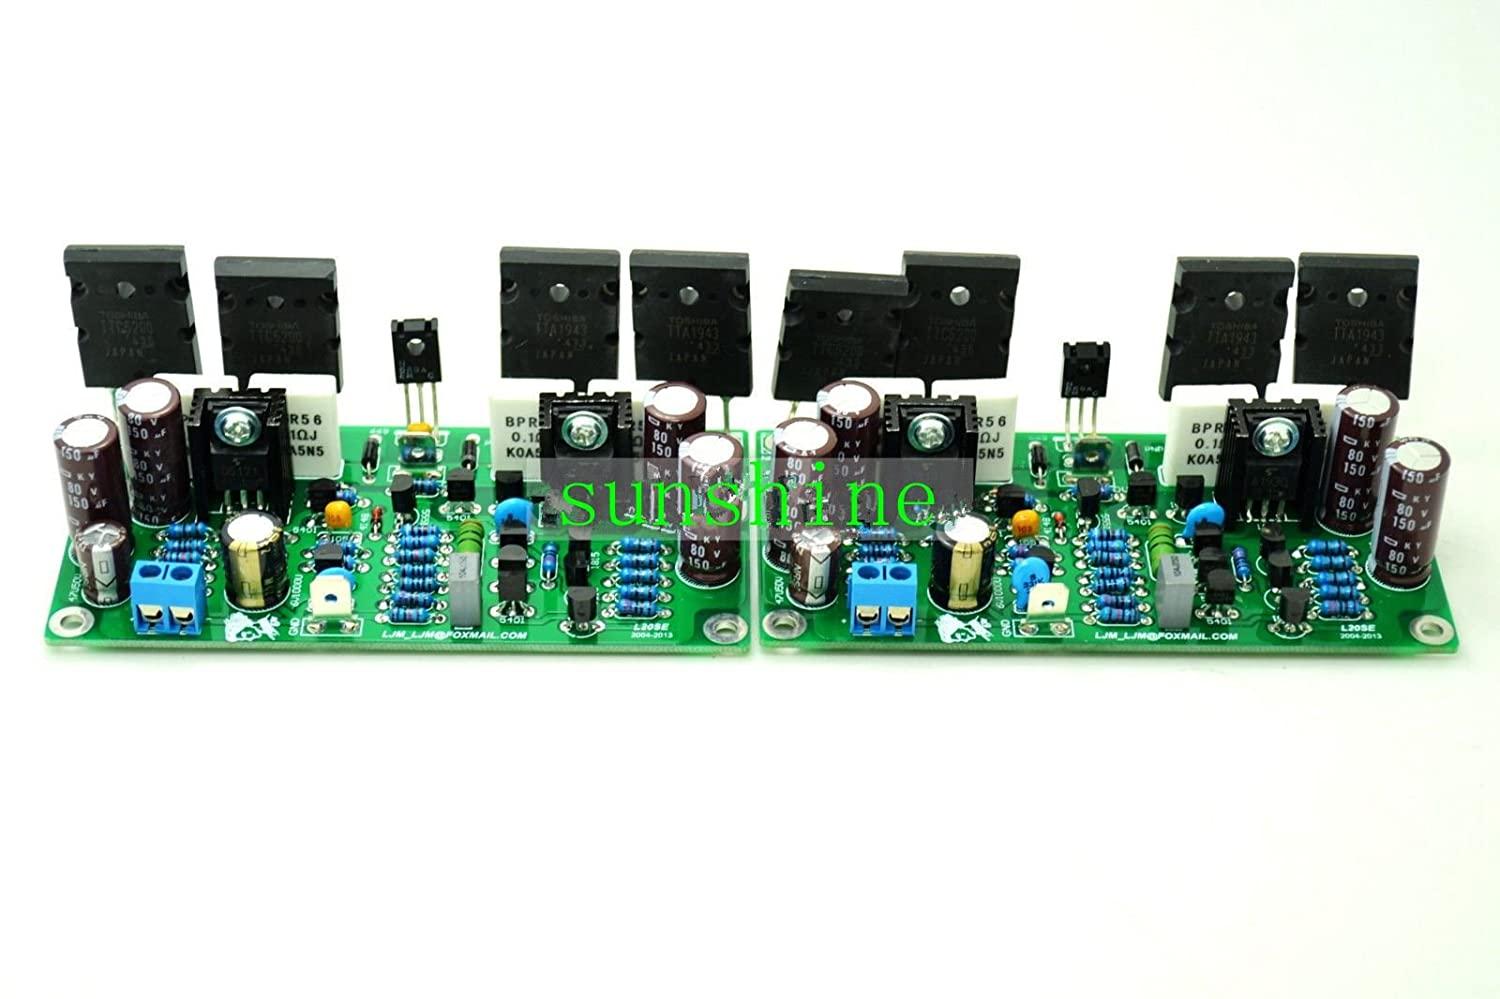 L20se Dual Channel 350w 4ohm 2sa1943 2sc5200 Original New Toshiba Integrated Circuit O 5200 1 Of See More Amplifier Board Final Home Audio Theater